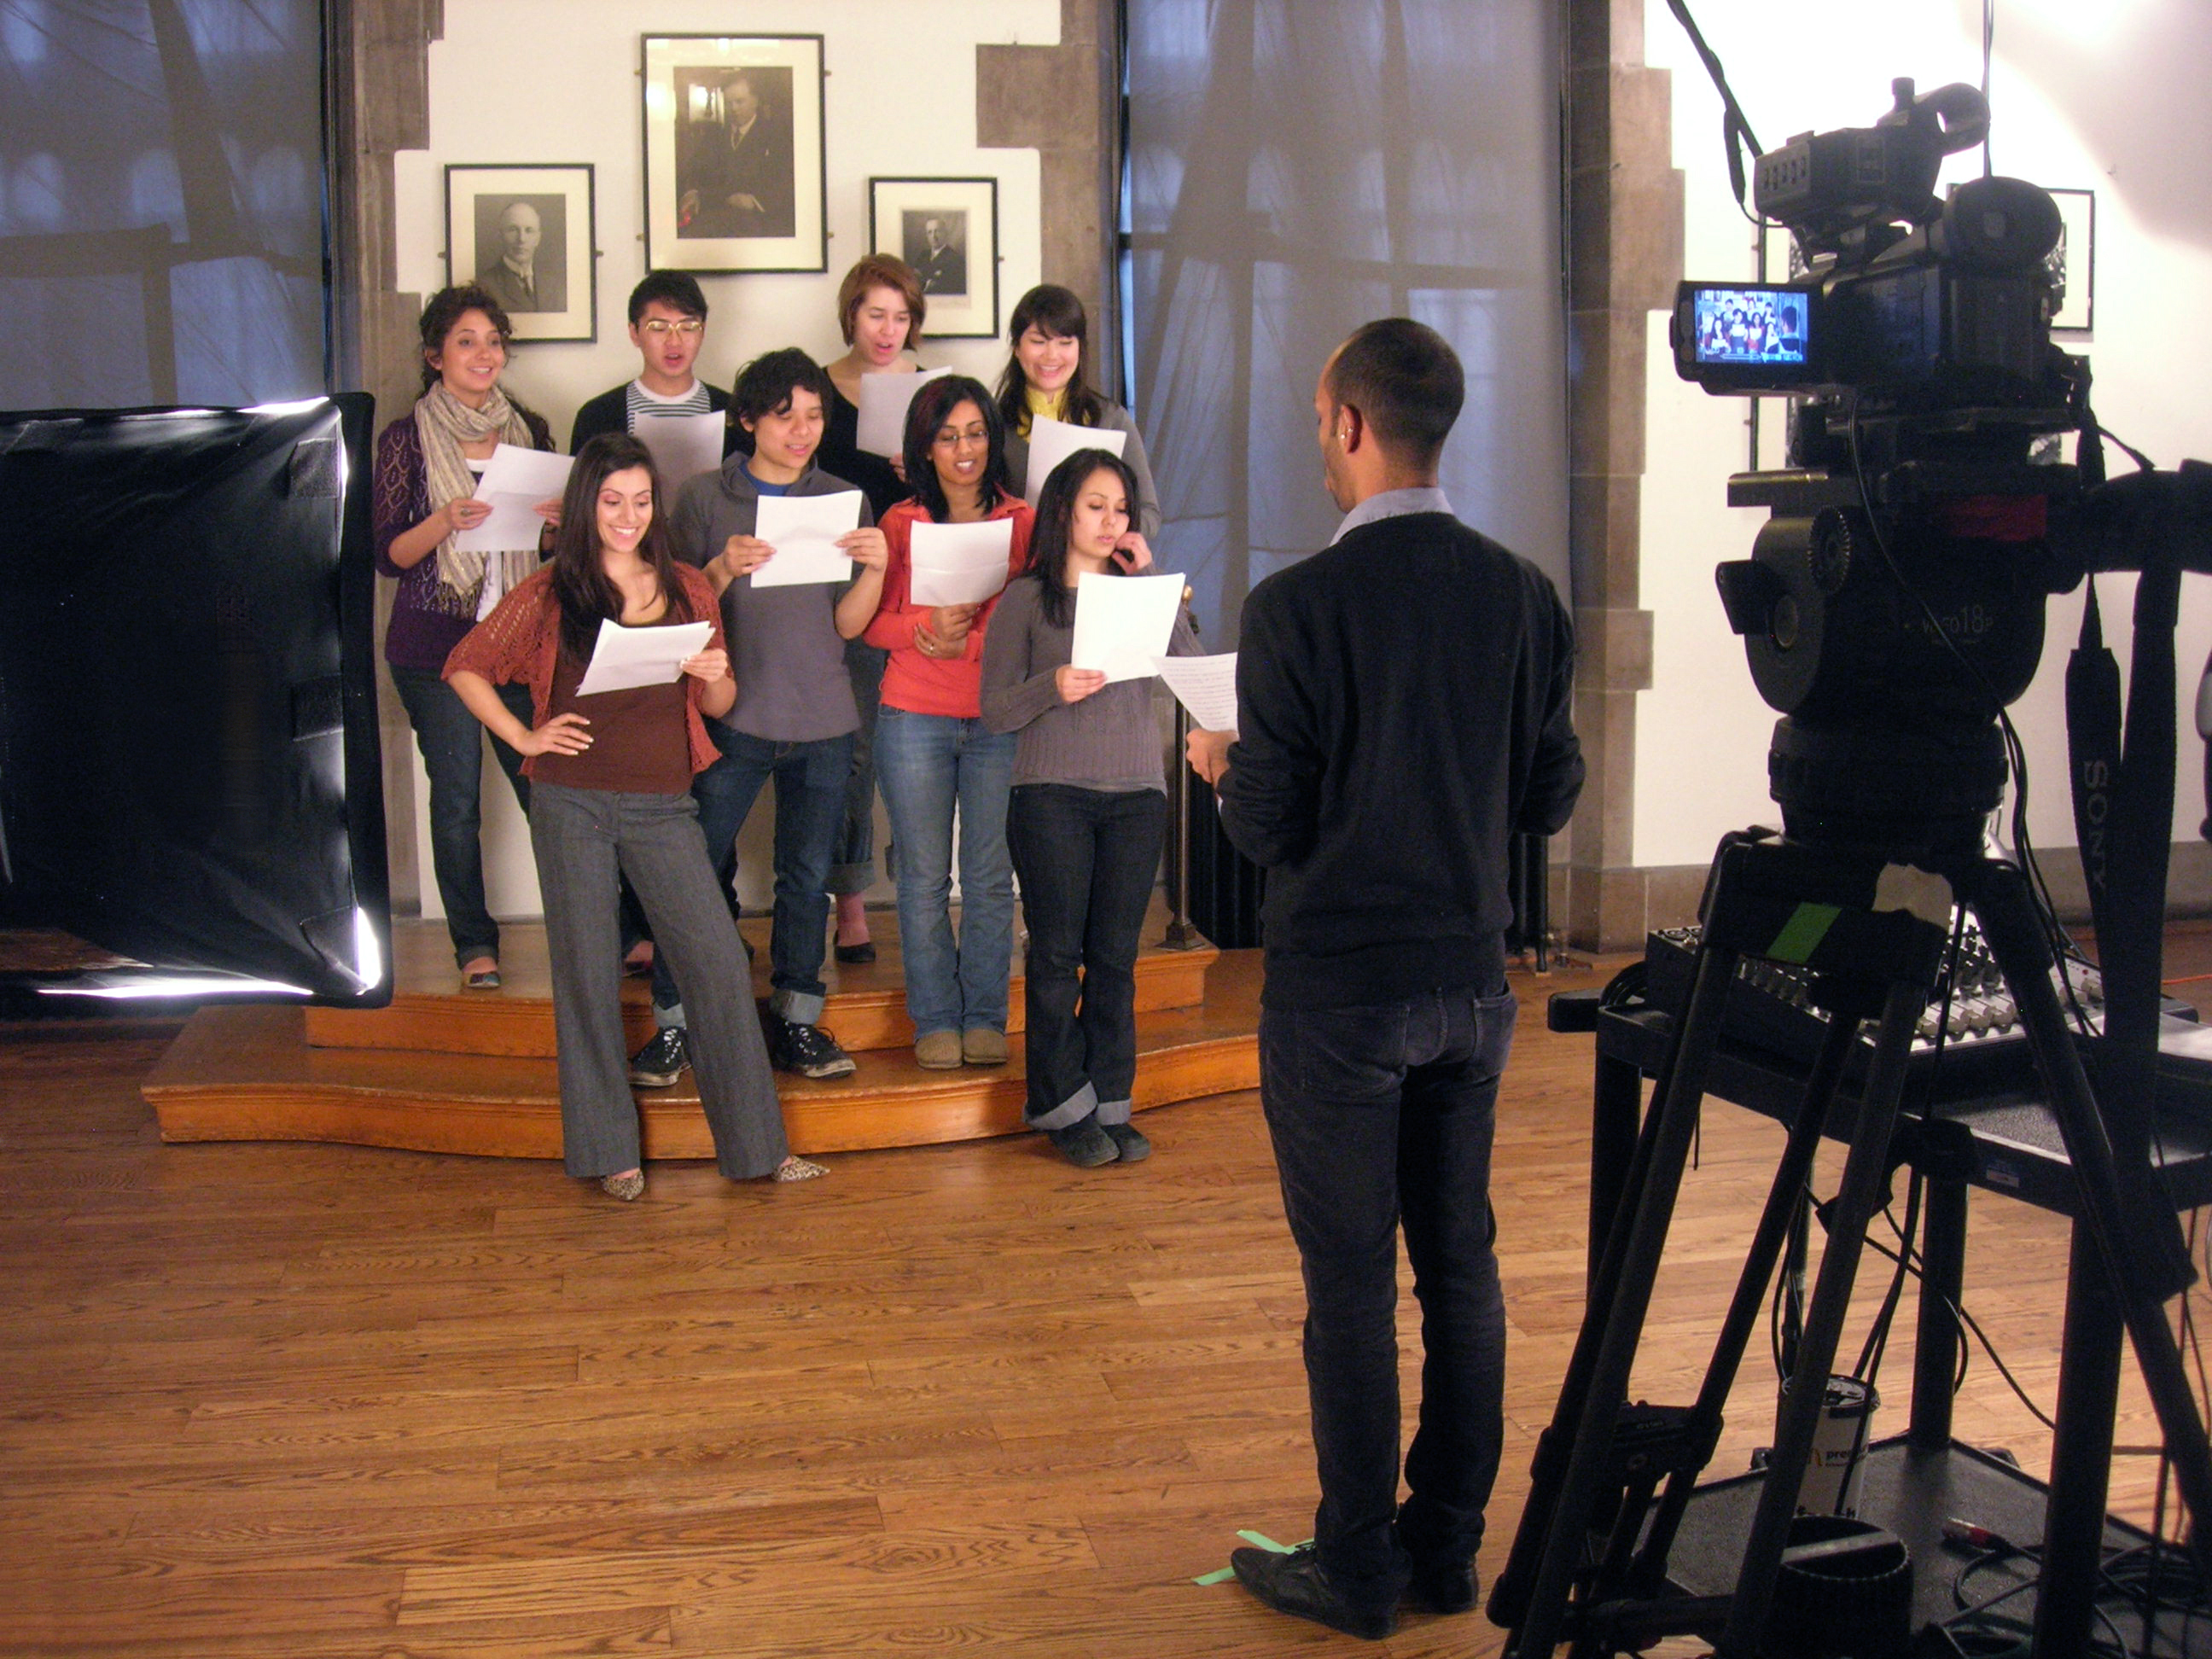 Eight people are standing in two rows. Each one is holding a sheet of paper. A man seen from the back is directing the group. Behind him is a camera.